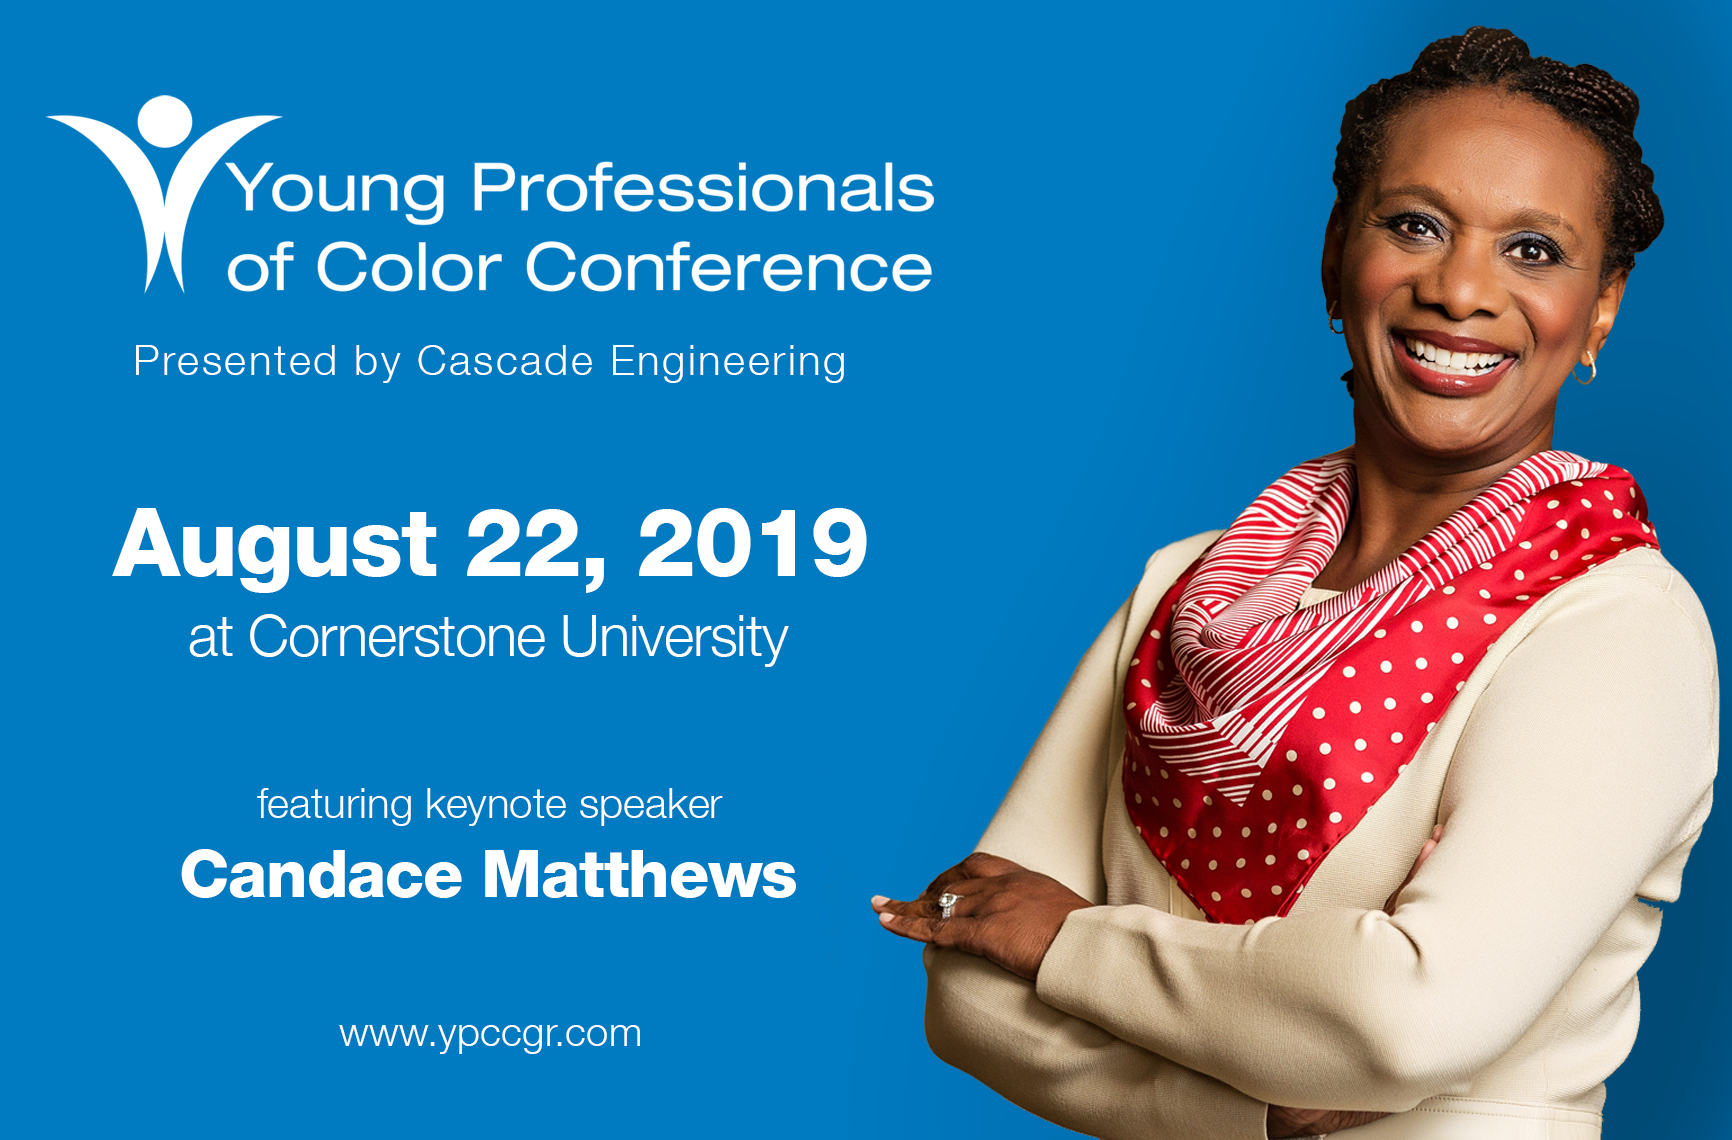 YPCC 2019 Save the Date August 22